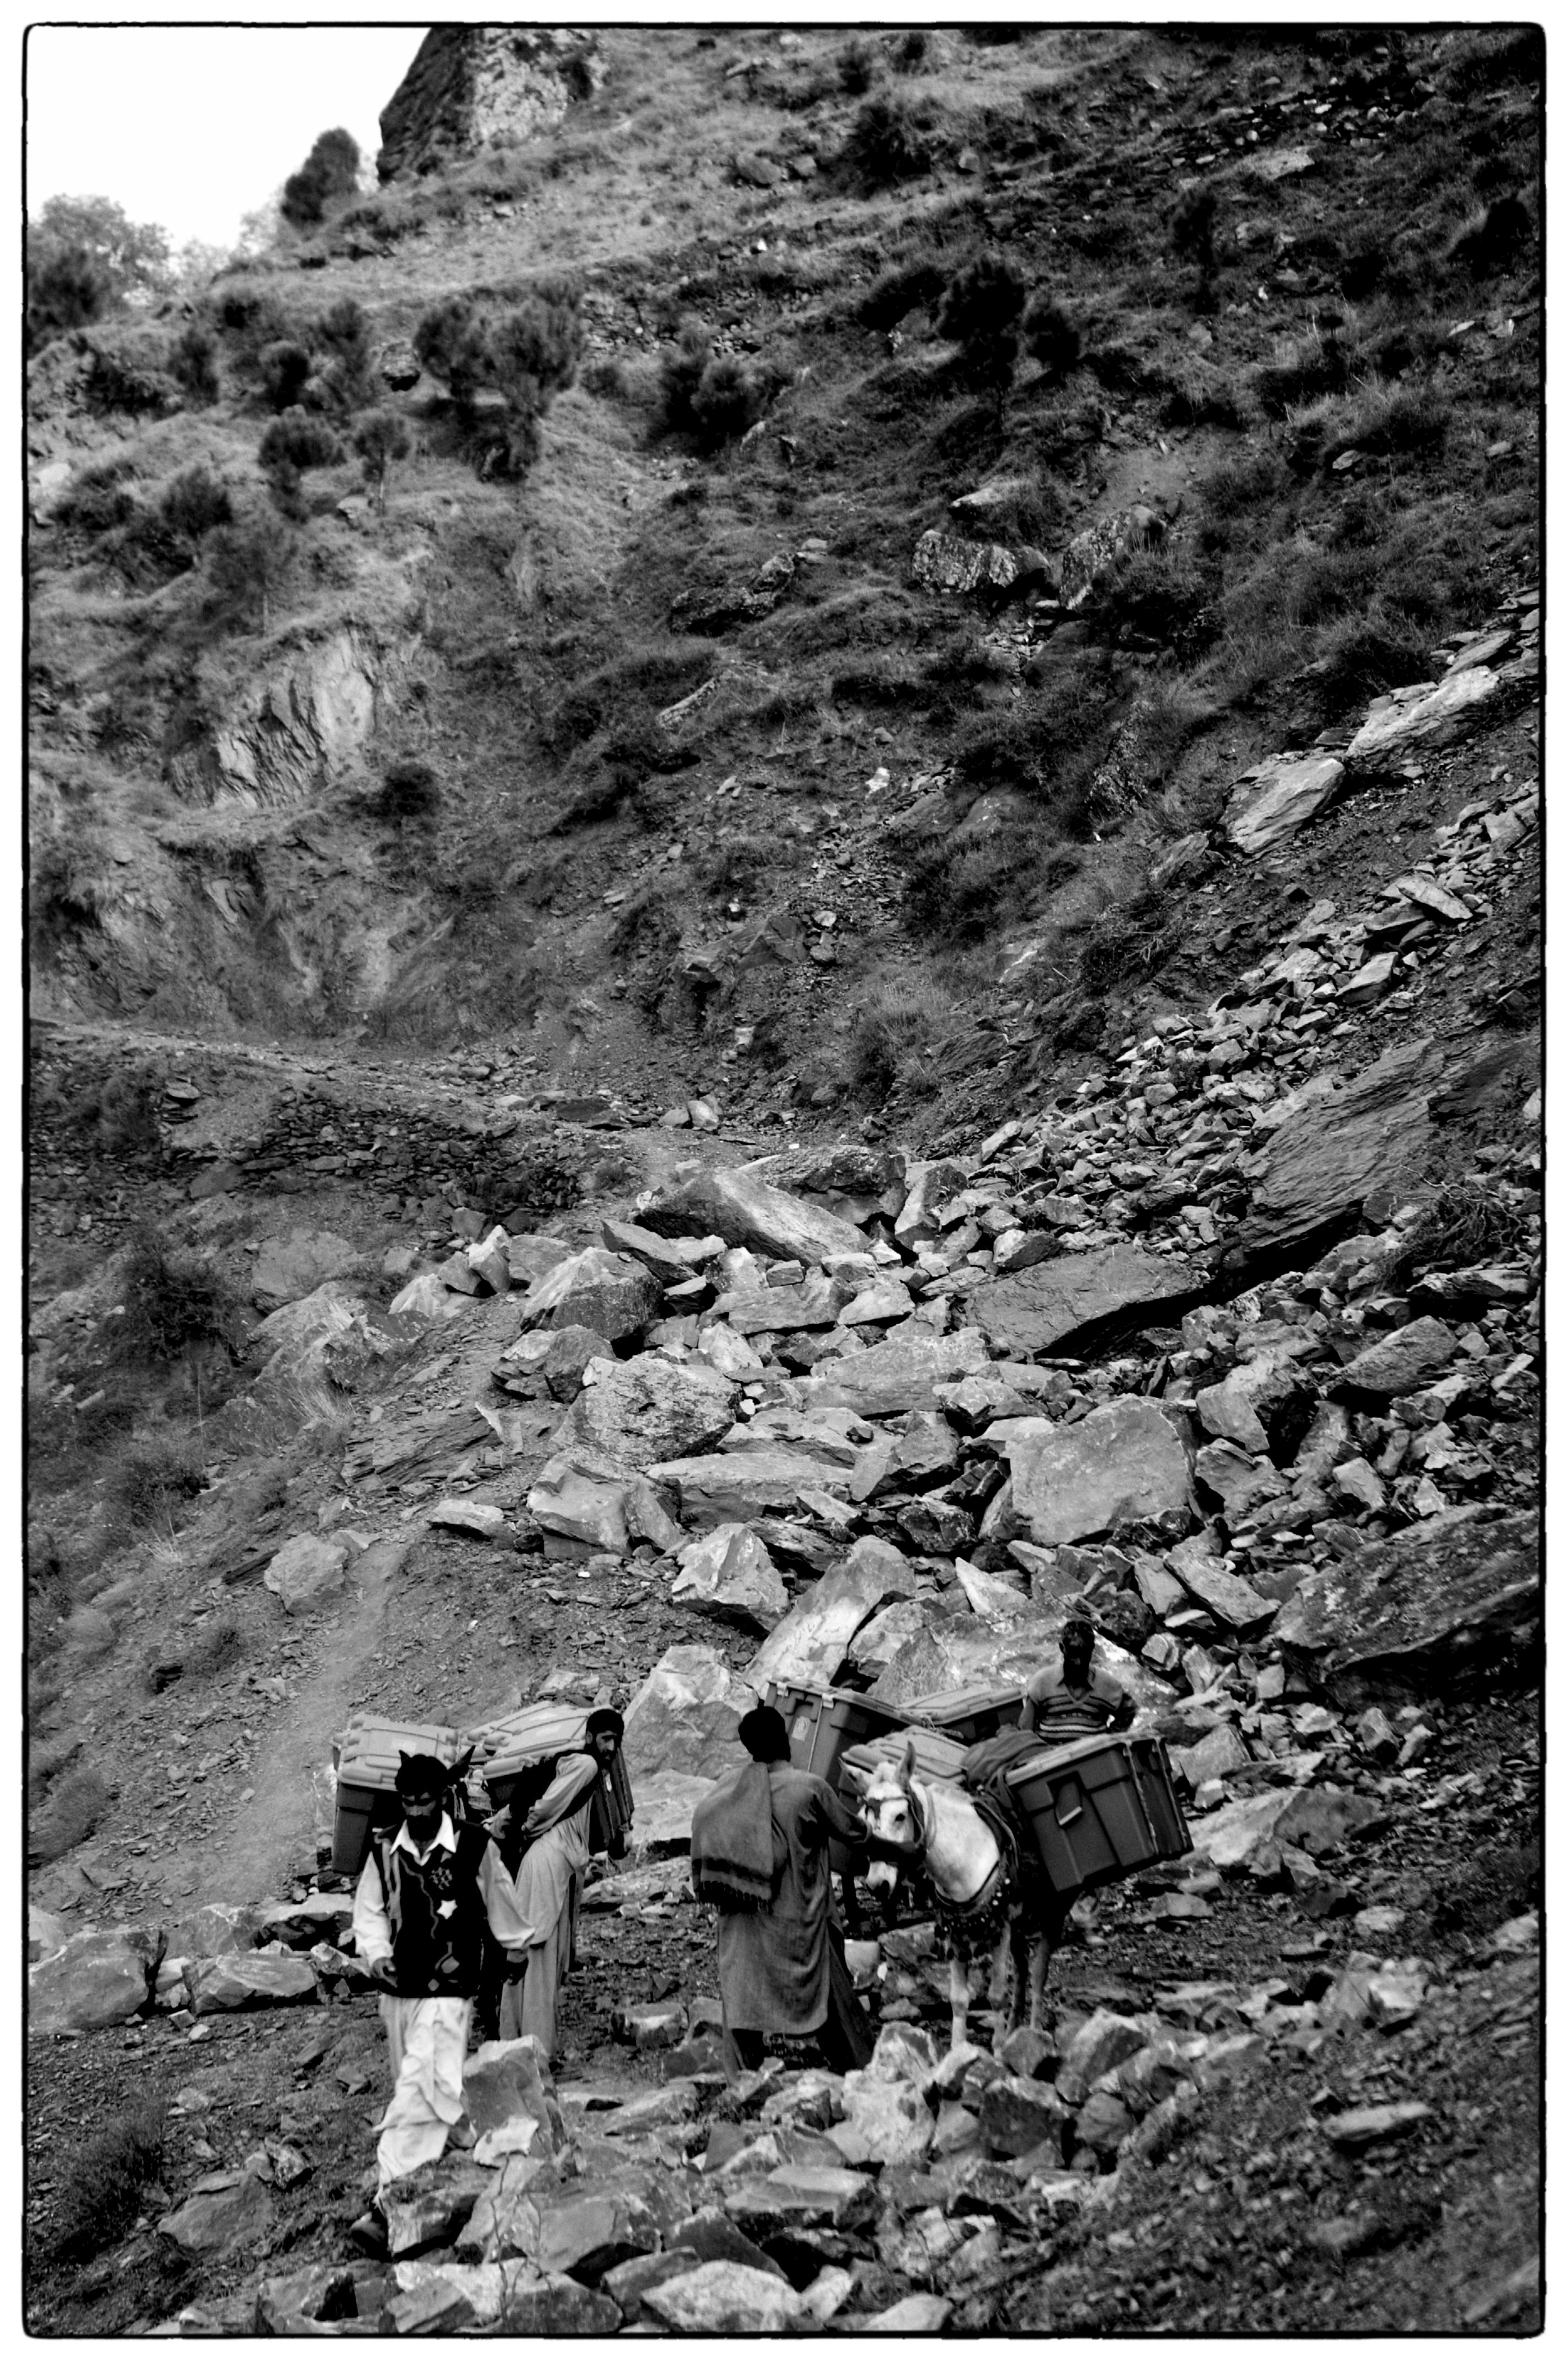 Mules carrying aid thousands of feet above Balakot, NWFP, Pakistan, November 8, 2005. (Photo / Mark Pearson) The massive October earthquake in Kashmir affected one of the highest and most remote places on earth. Difficult terrain slowed the relief effort and the largest scale humanitarian air operations since the Berlin blockade began.